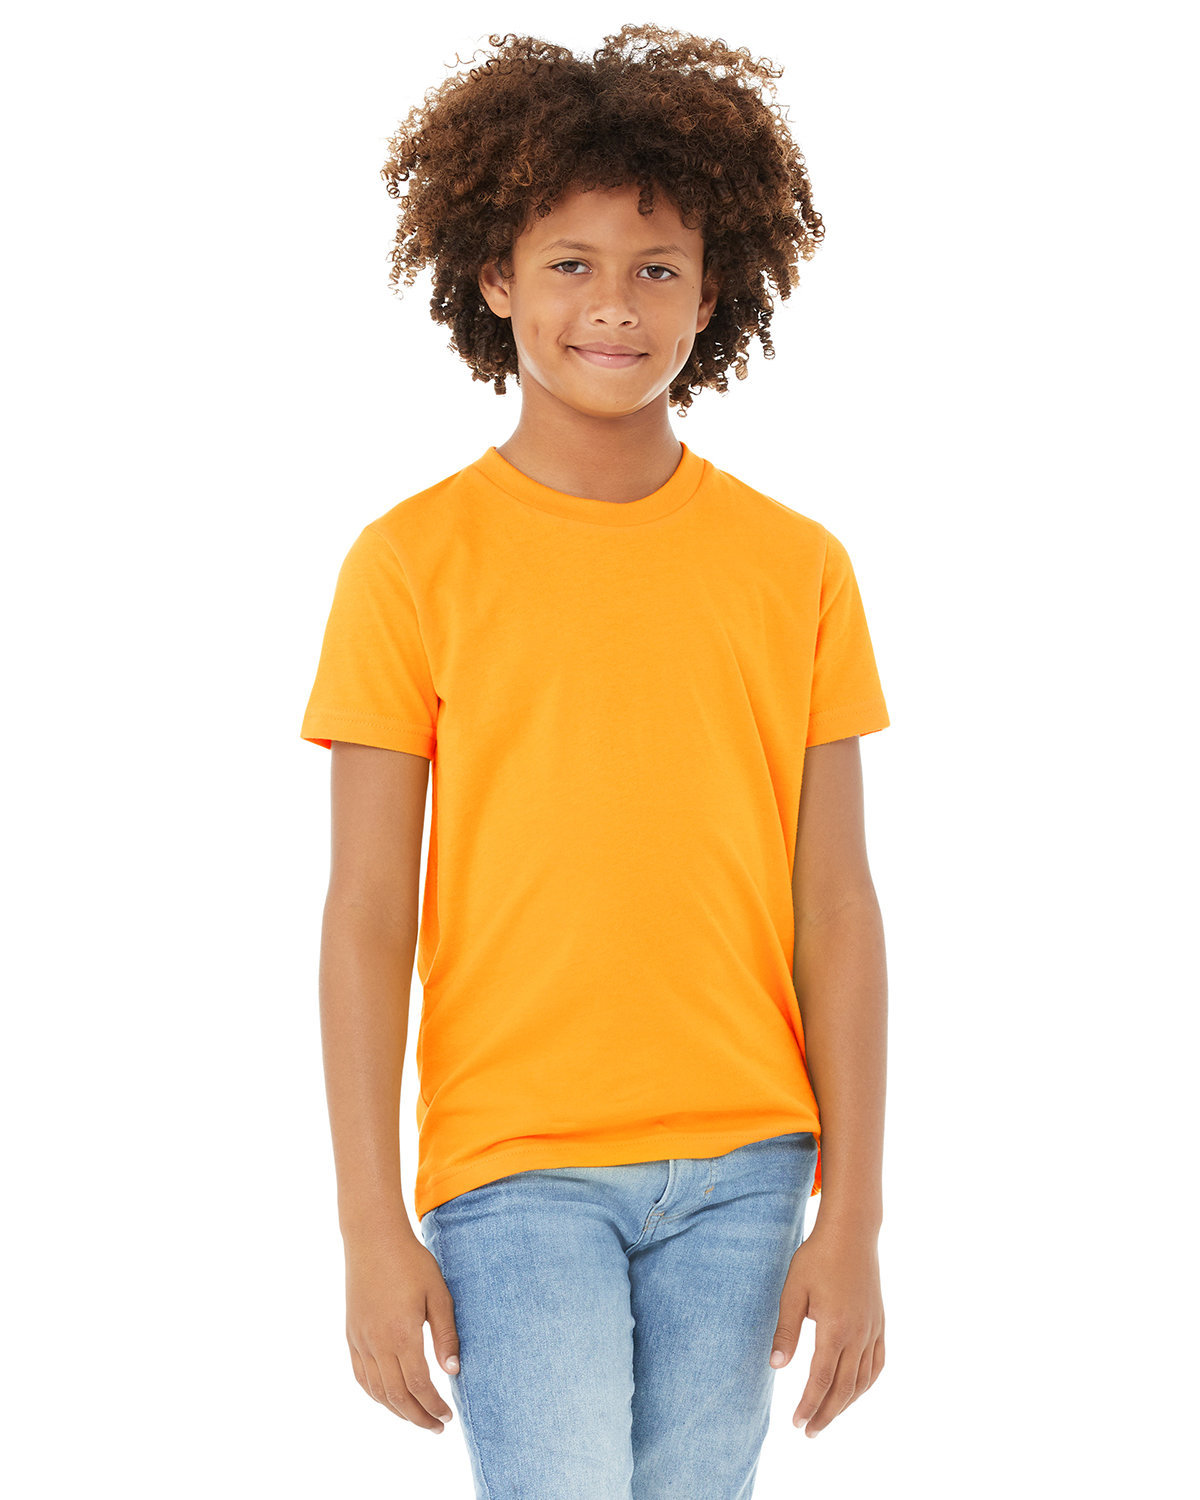 Bella + Canvas Youth Jersey T-Shirt GOLD